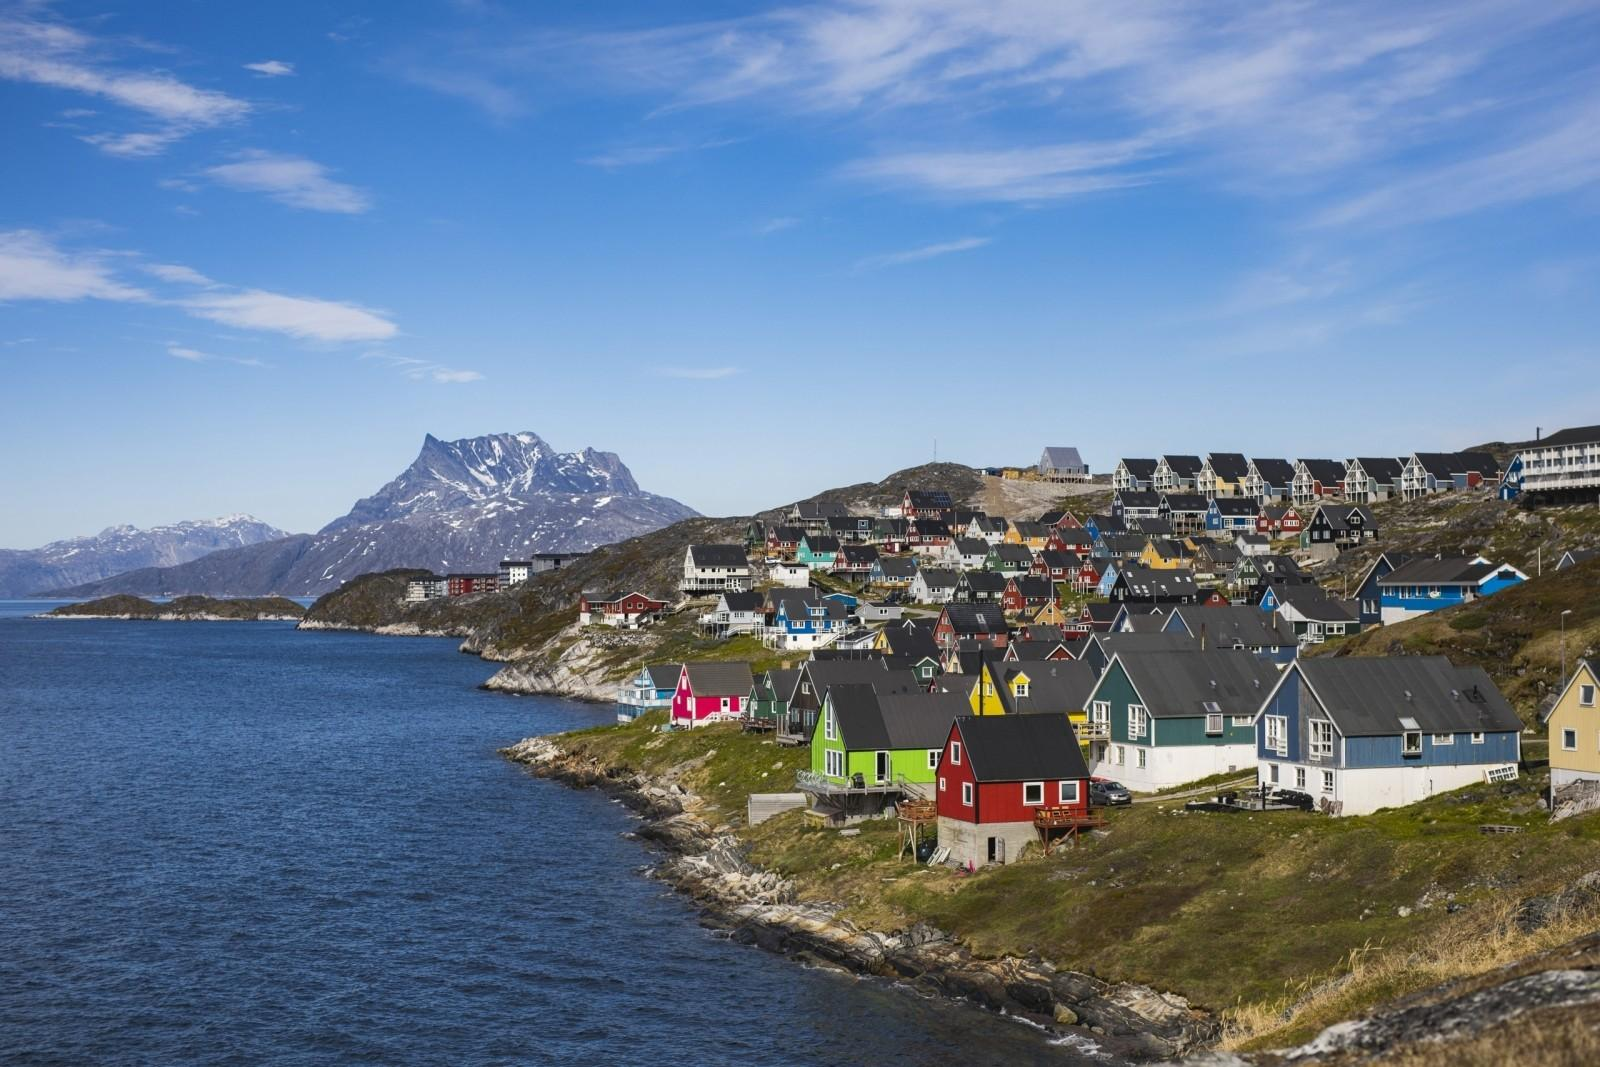 After-One of the famous viewpoint in Nuuk, the view from Myggedalen